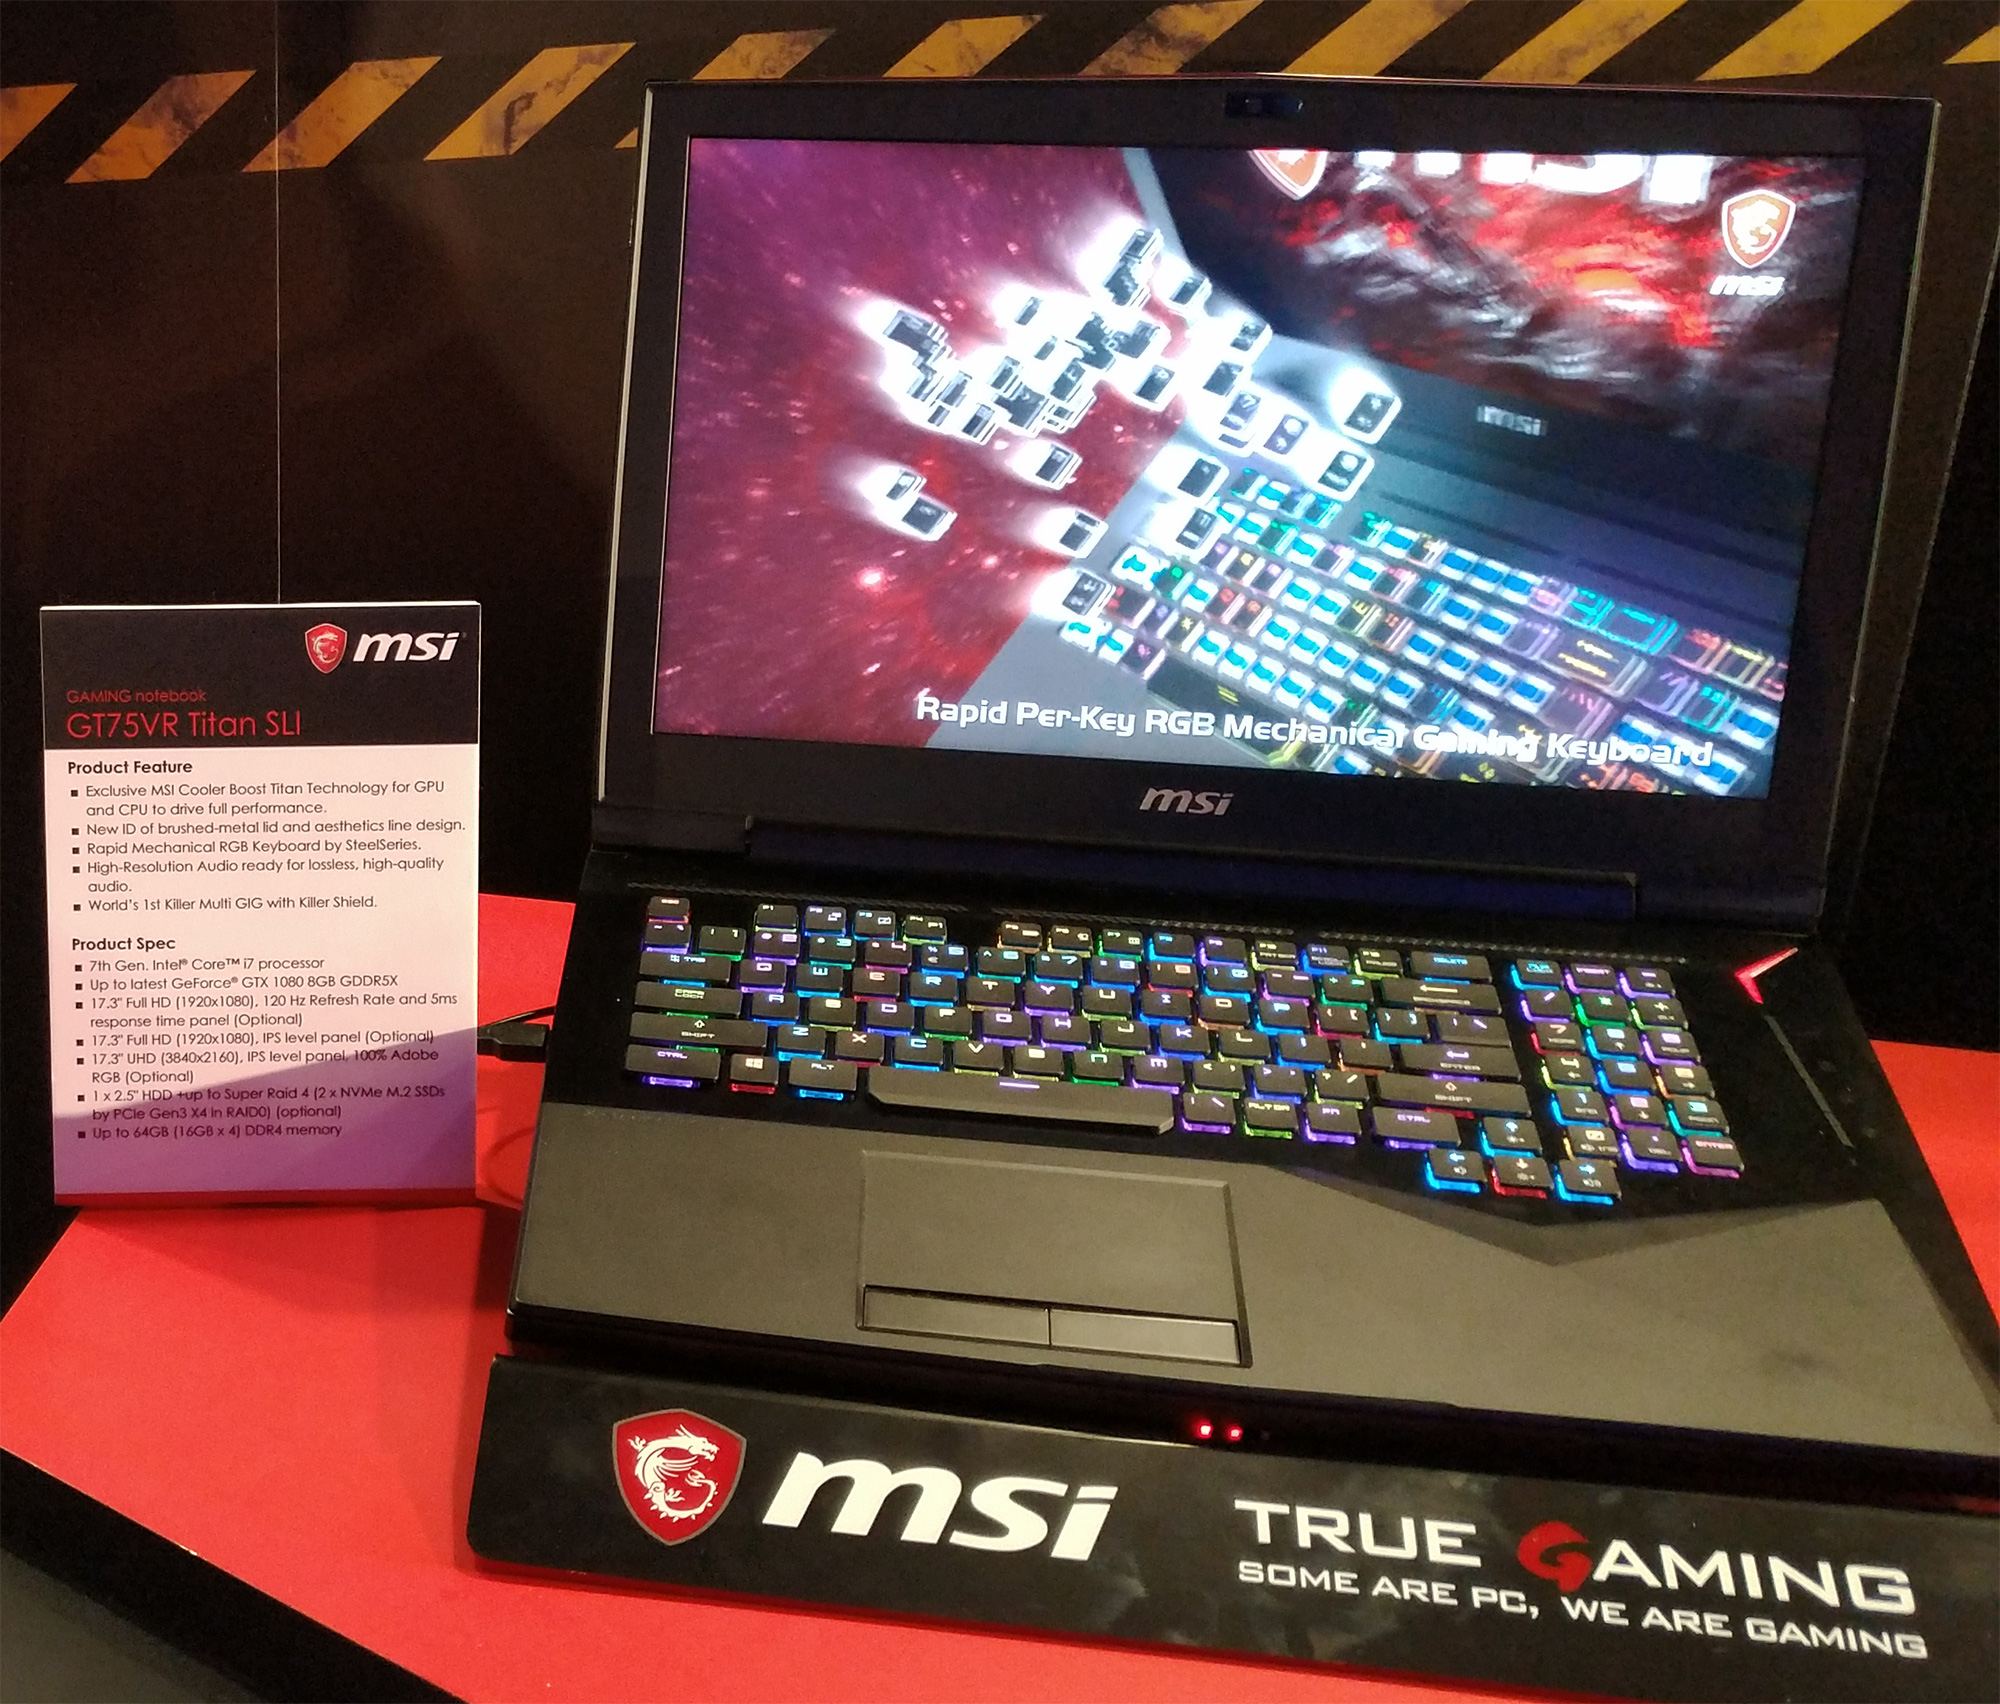 Computex: MSI lancia 3 nuovi notebook da gaming con monitor a 120Hz